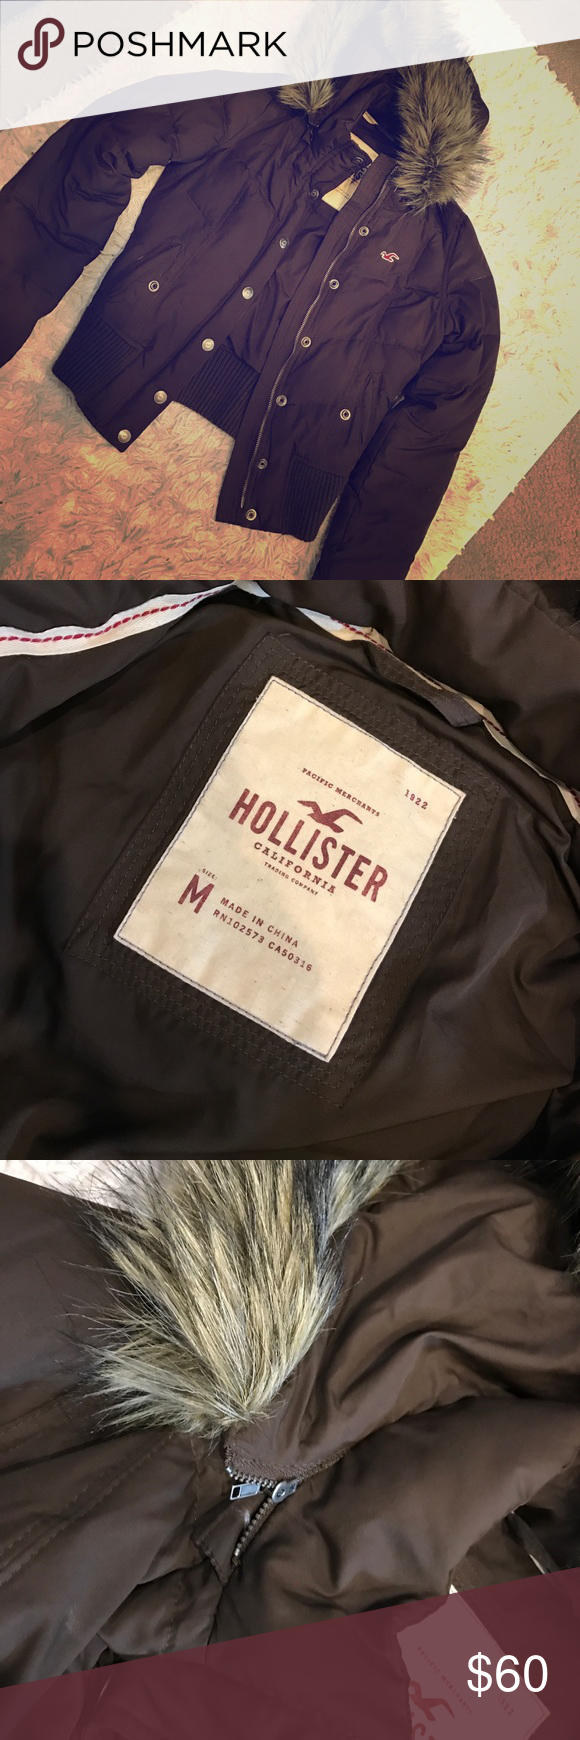 Hollister puff jacket with removable hood Like new Hollister puff jacket, with removable hood. Really cute jacket! Beautiful chocolate brown. No stains or defects Hollister Jackets & Coats Puffers